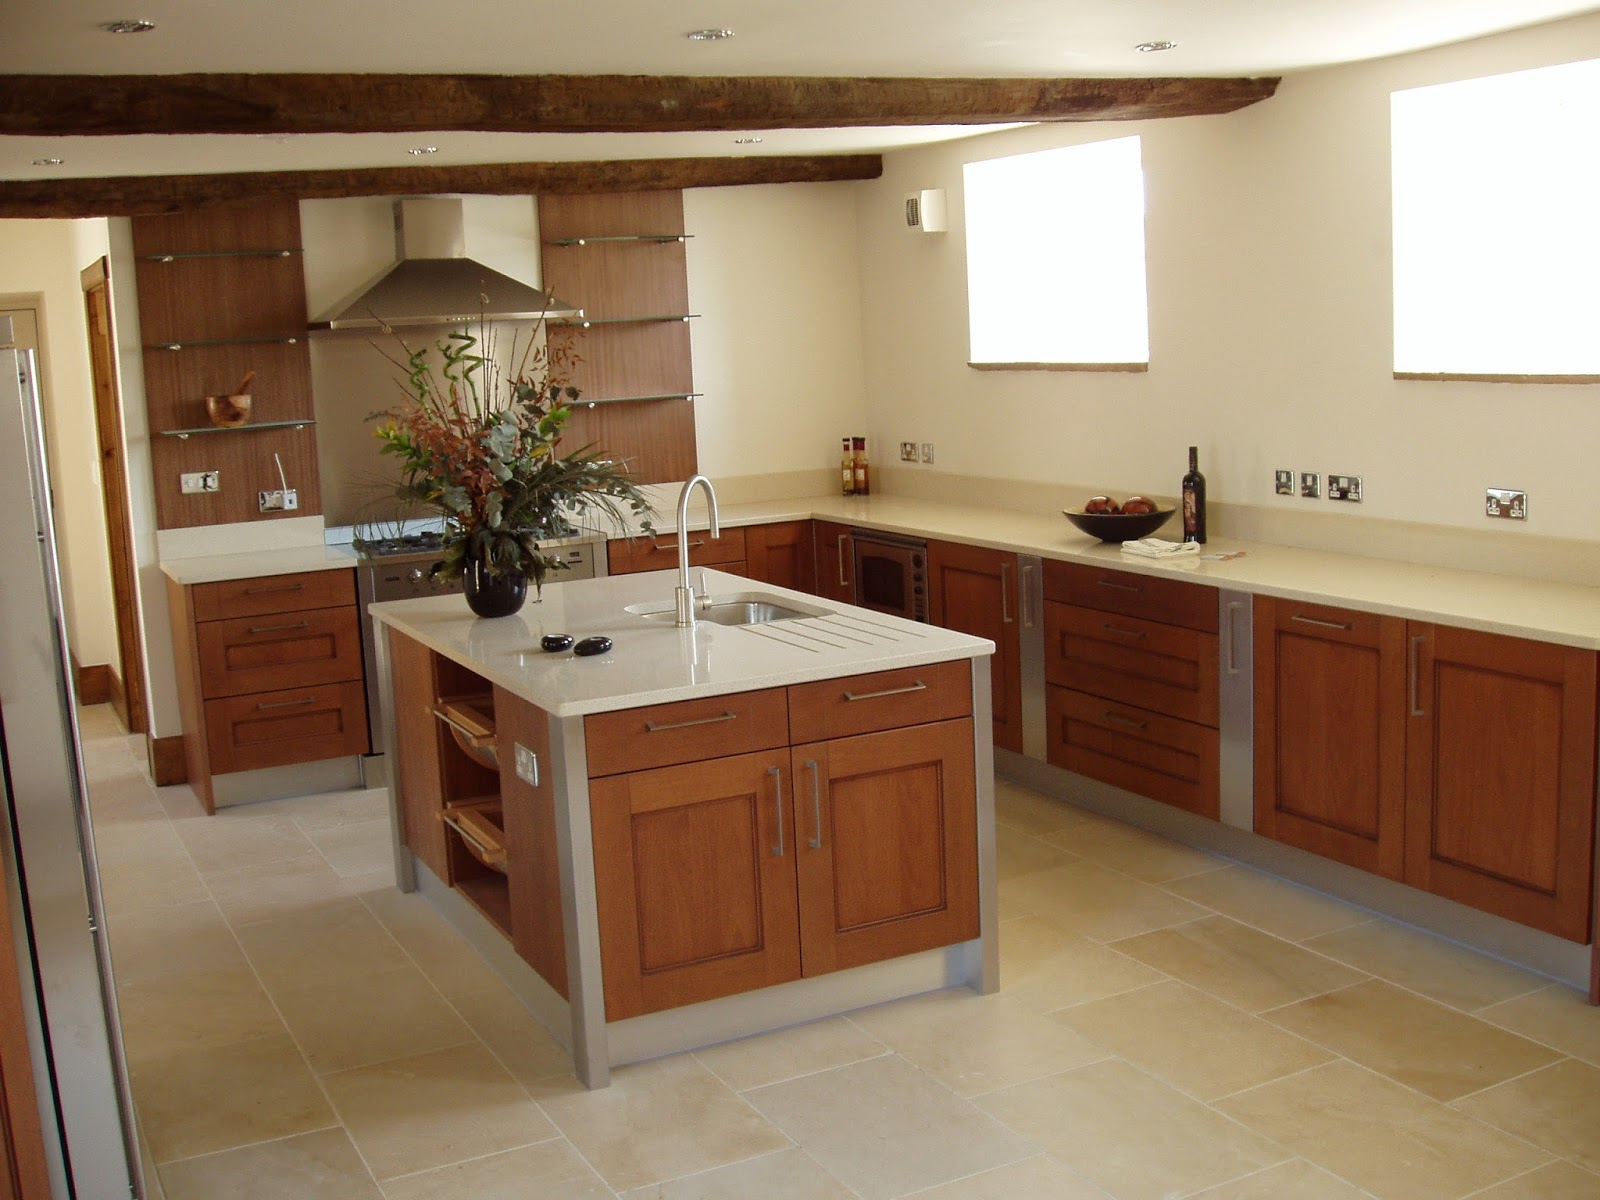 How To Improve An Old Tiled Kitchen Wall